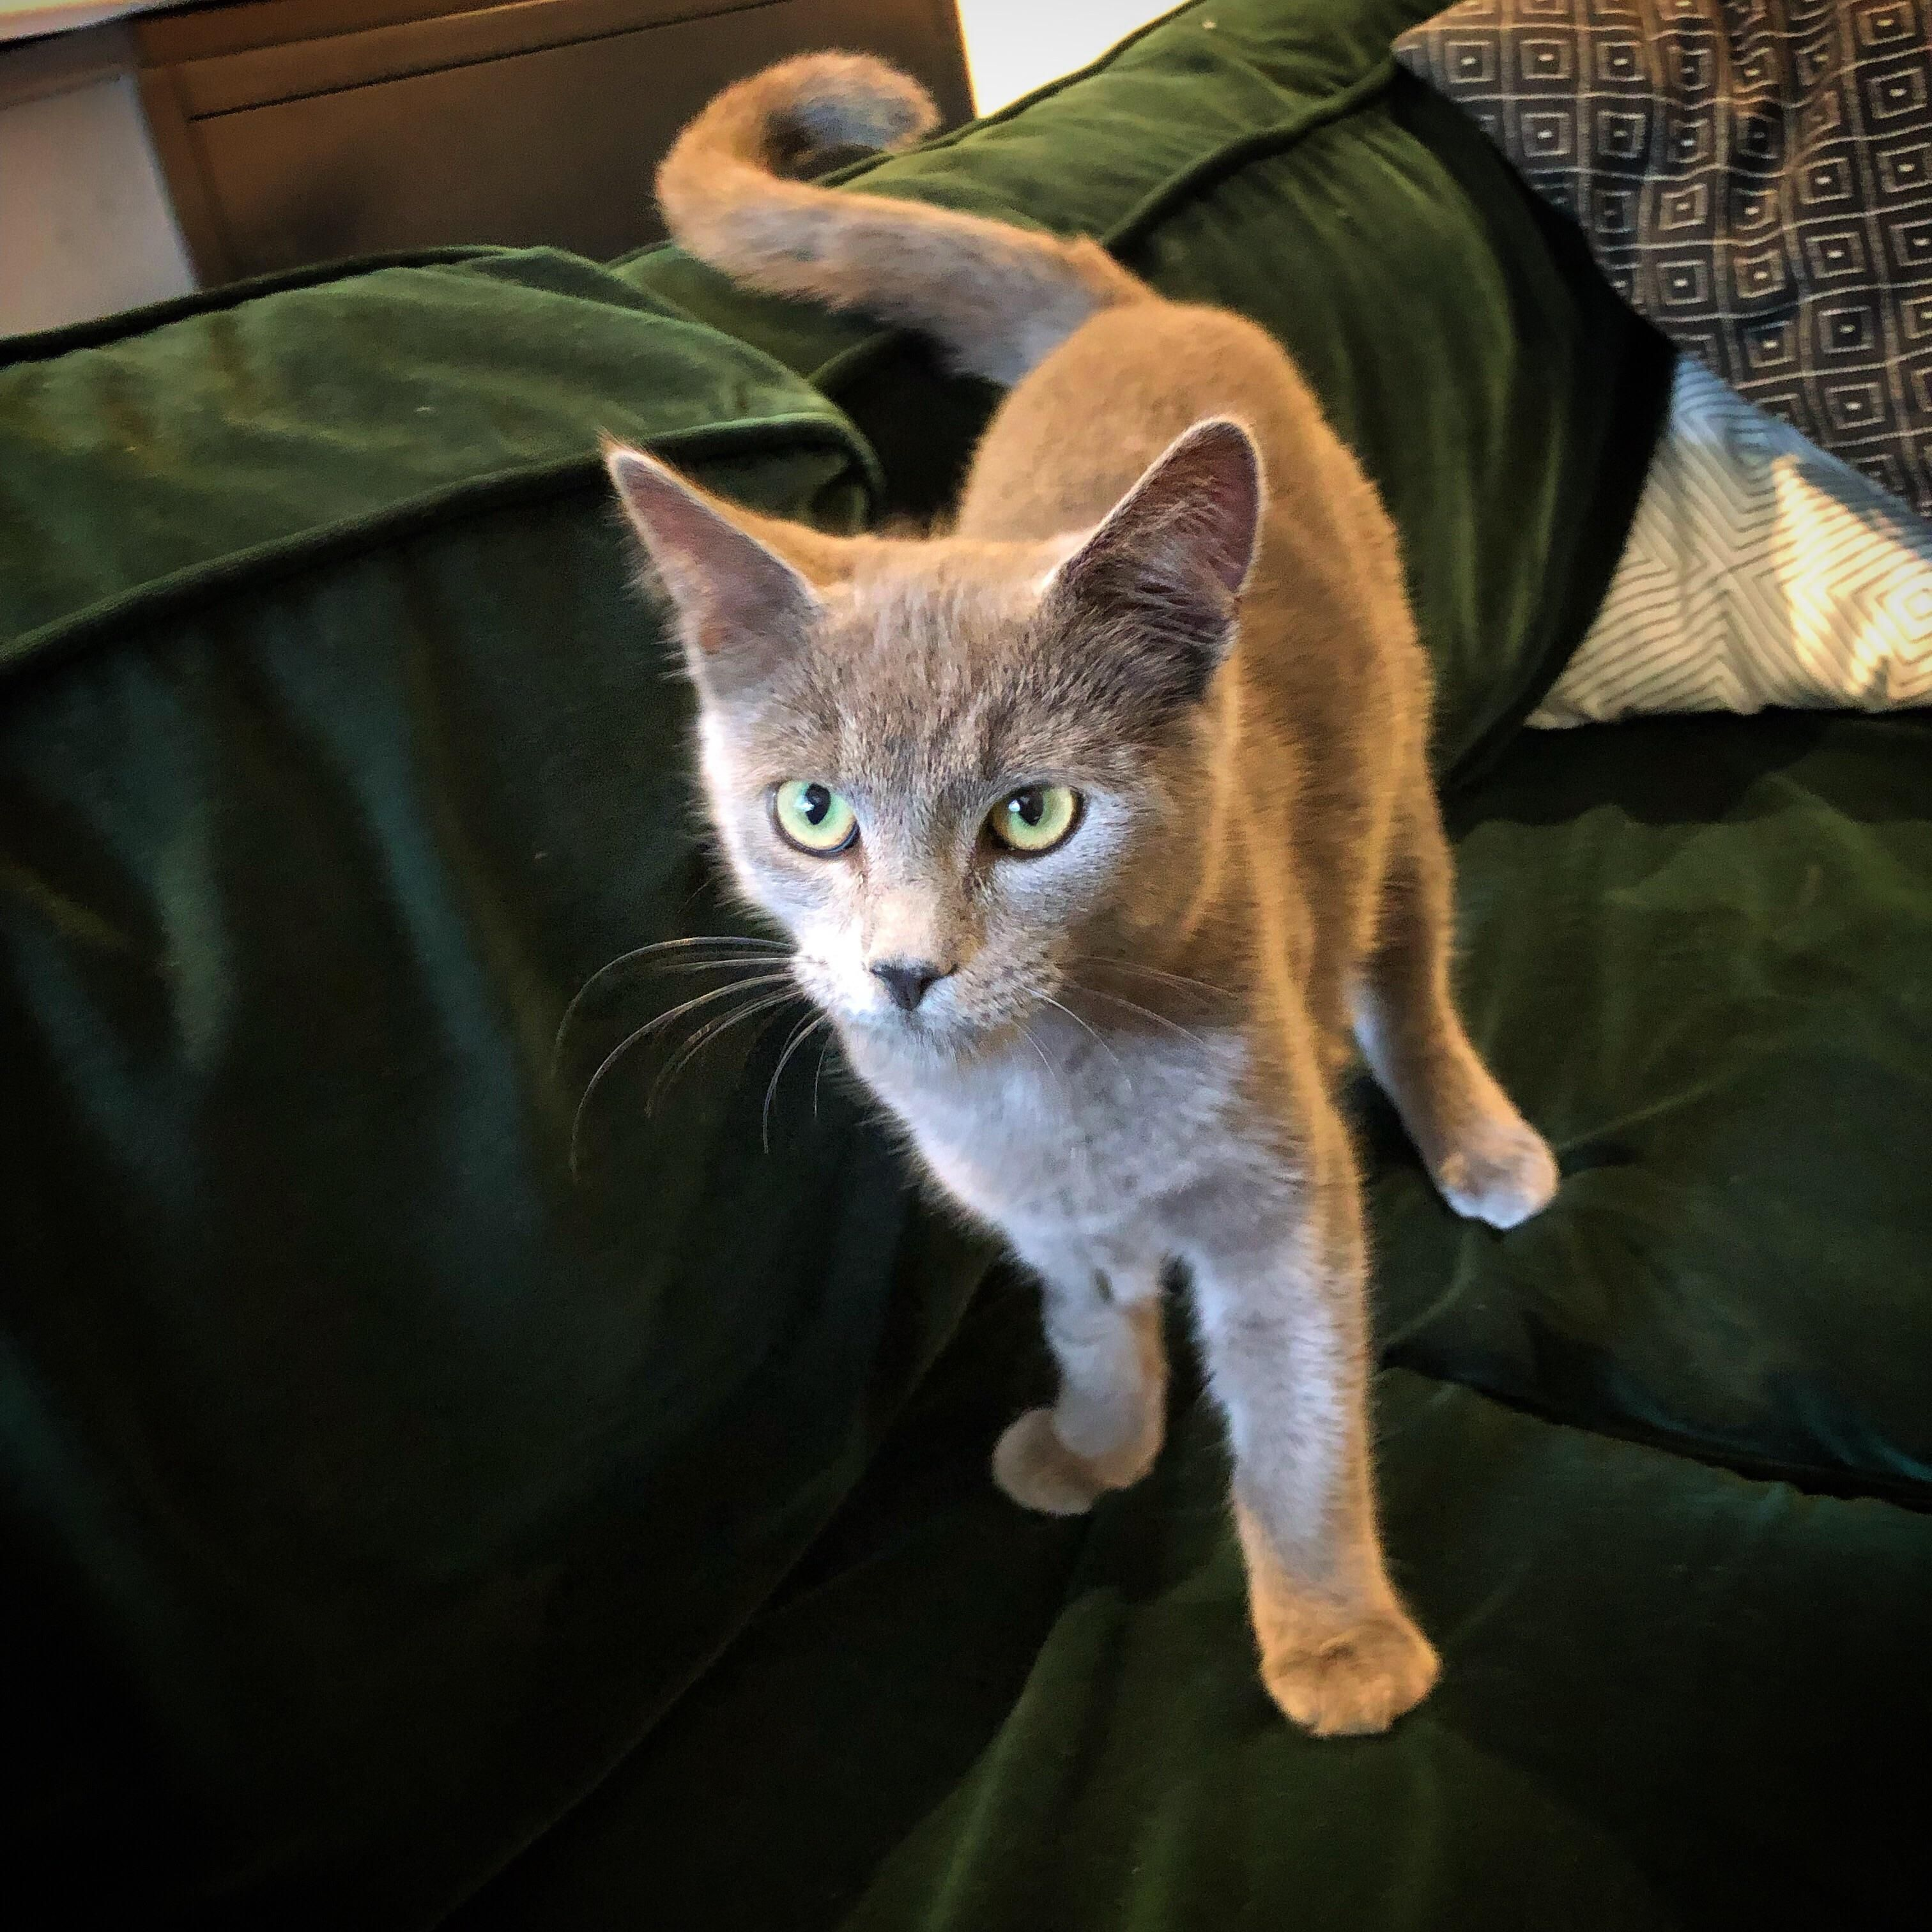 I Just Adopted My First Cat Reddit Say Hello To Vladimir Funny Looking Cats Cute Funny Animals Funny Animal Pictures